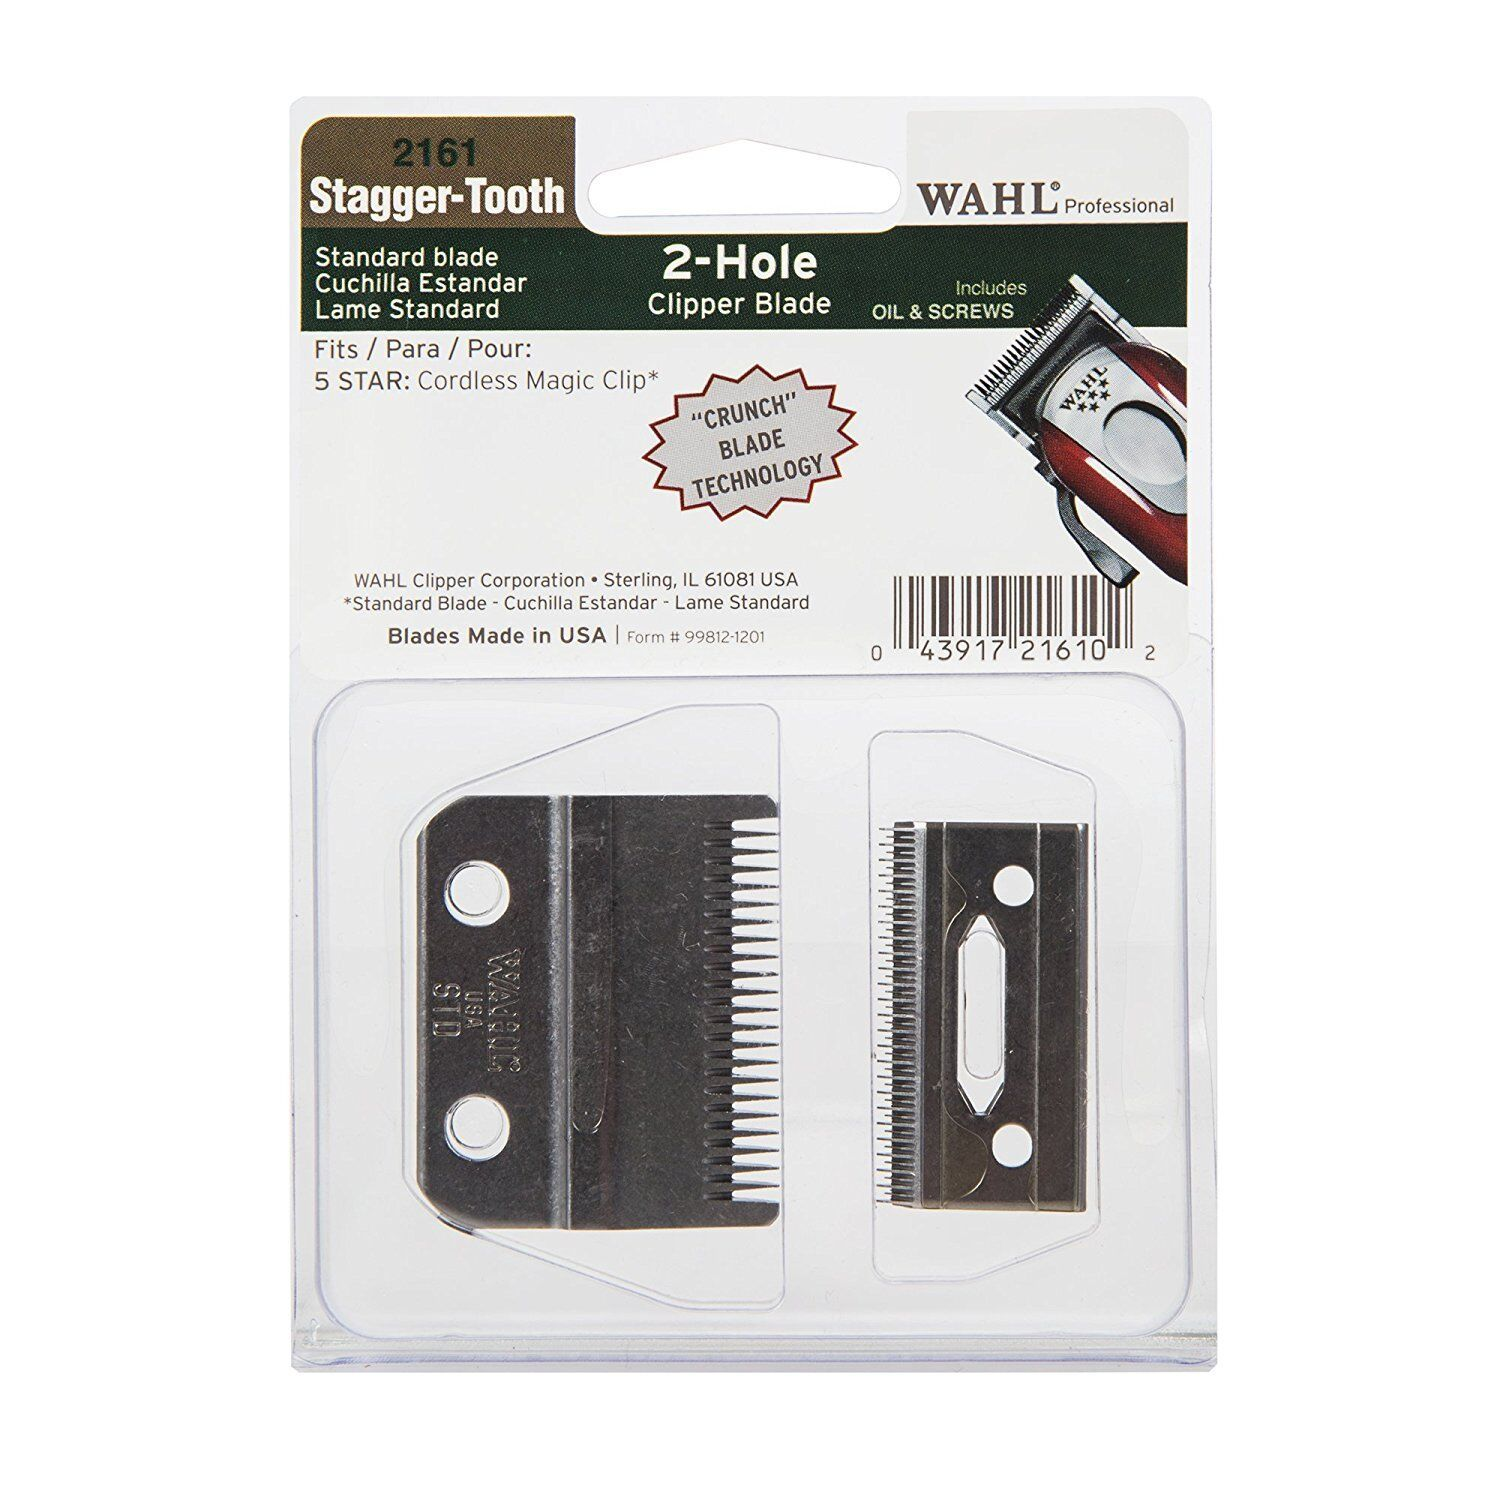 Wahl Stagger-Tooth 2-Hole Clipper Blade for 5 Star Cordless